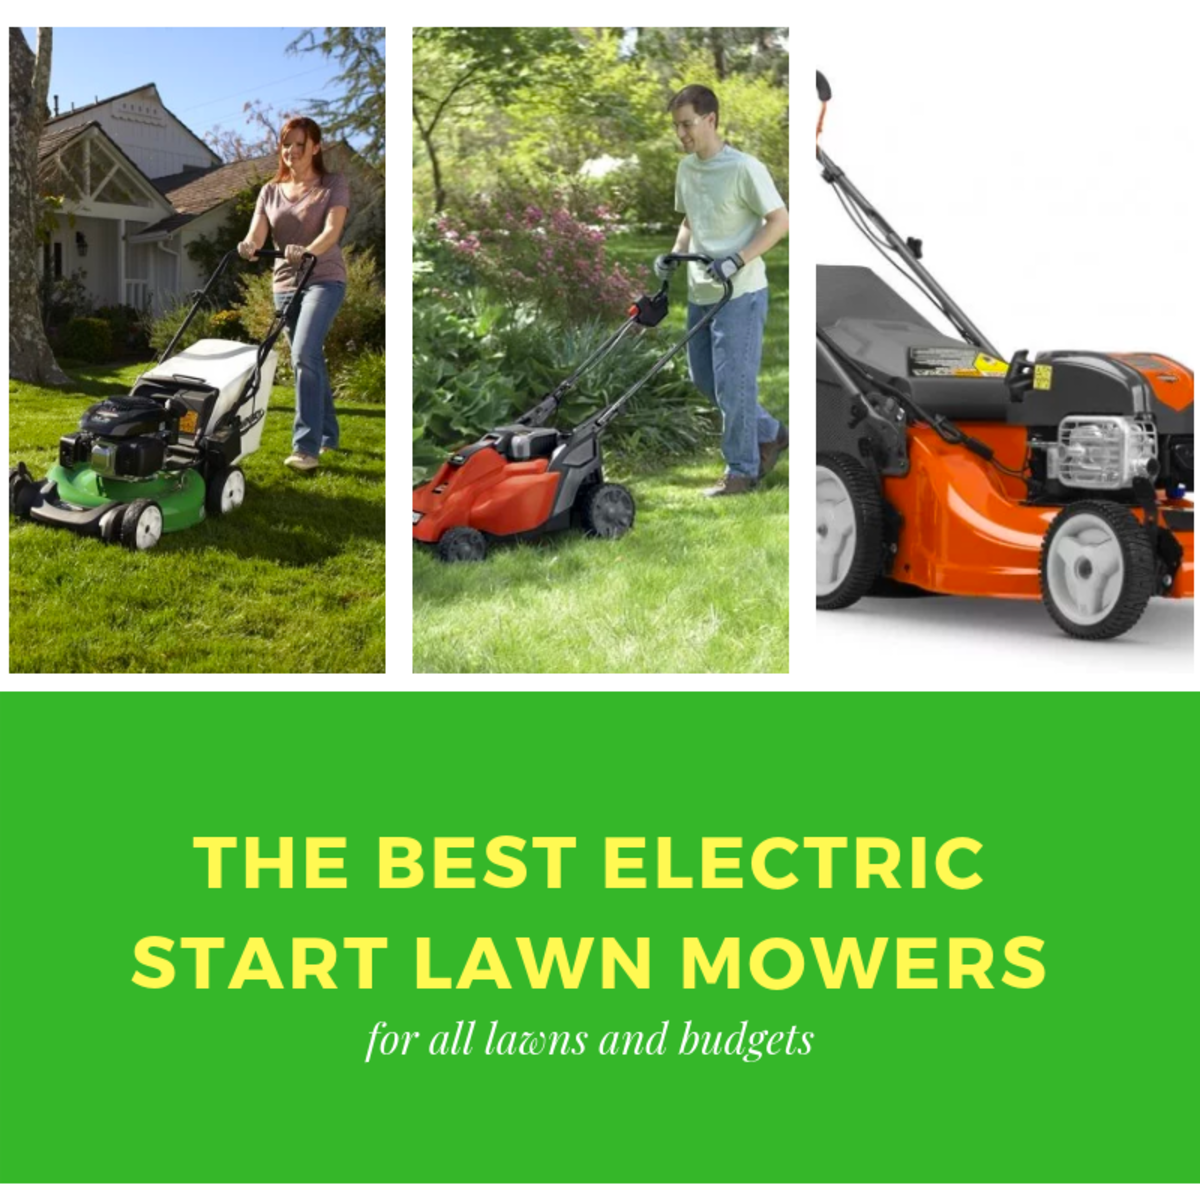 Top 3 Best Electric Start Lawn Mowers 2020